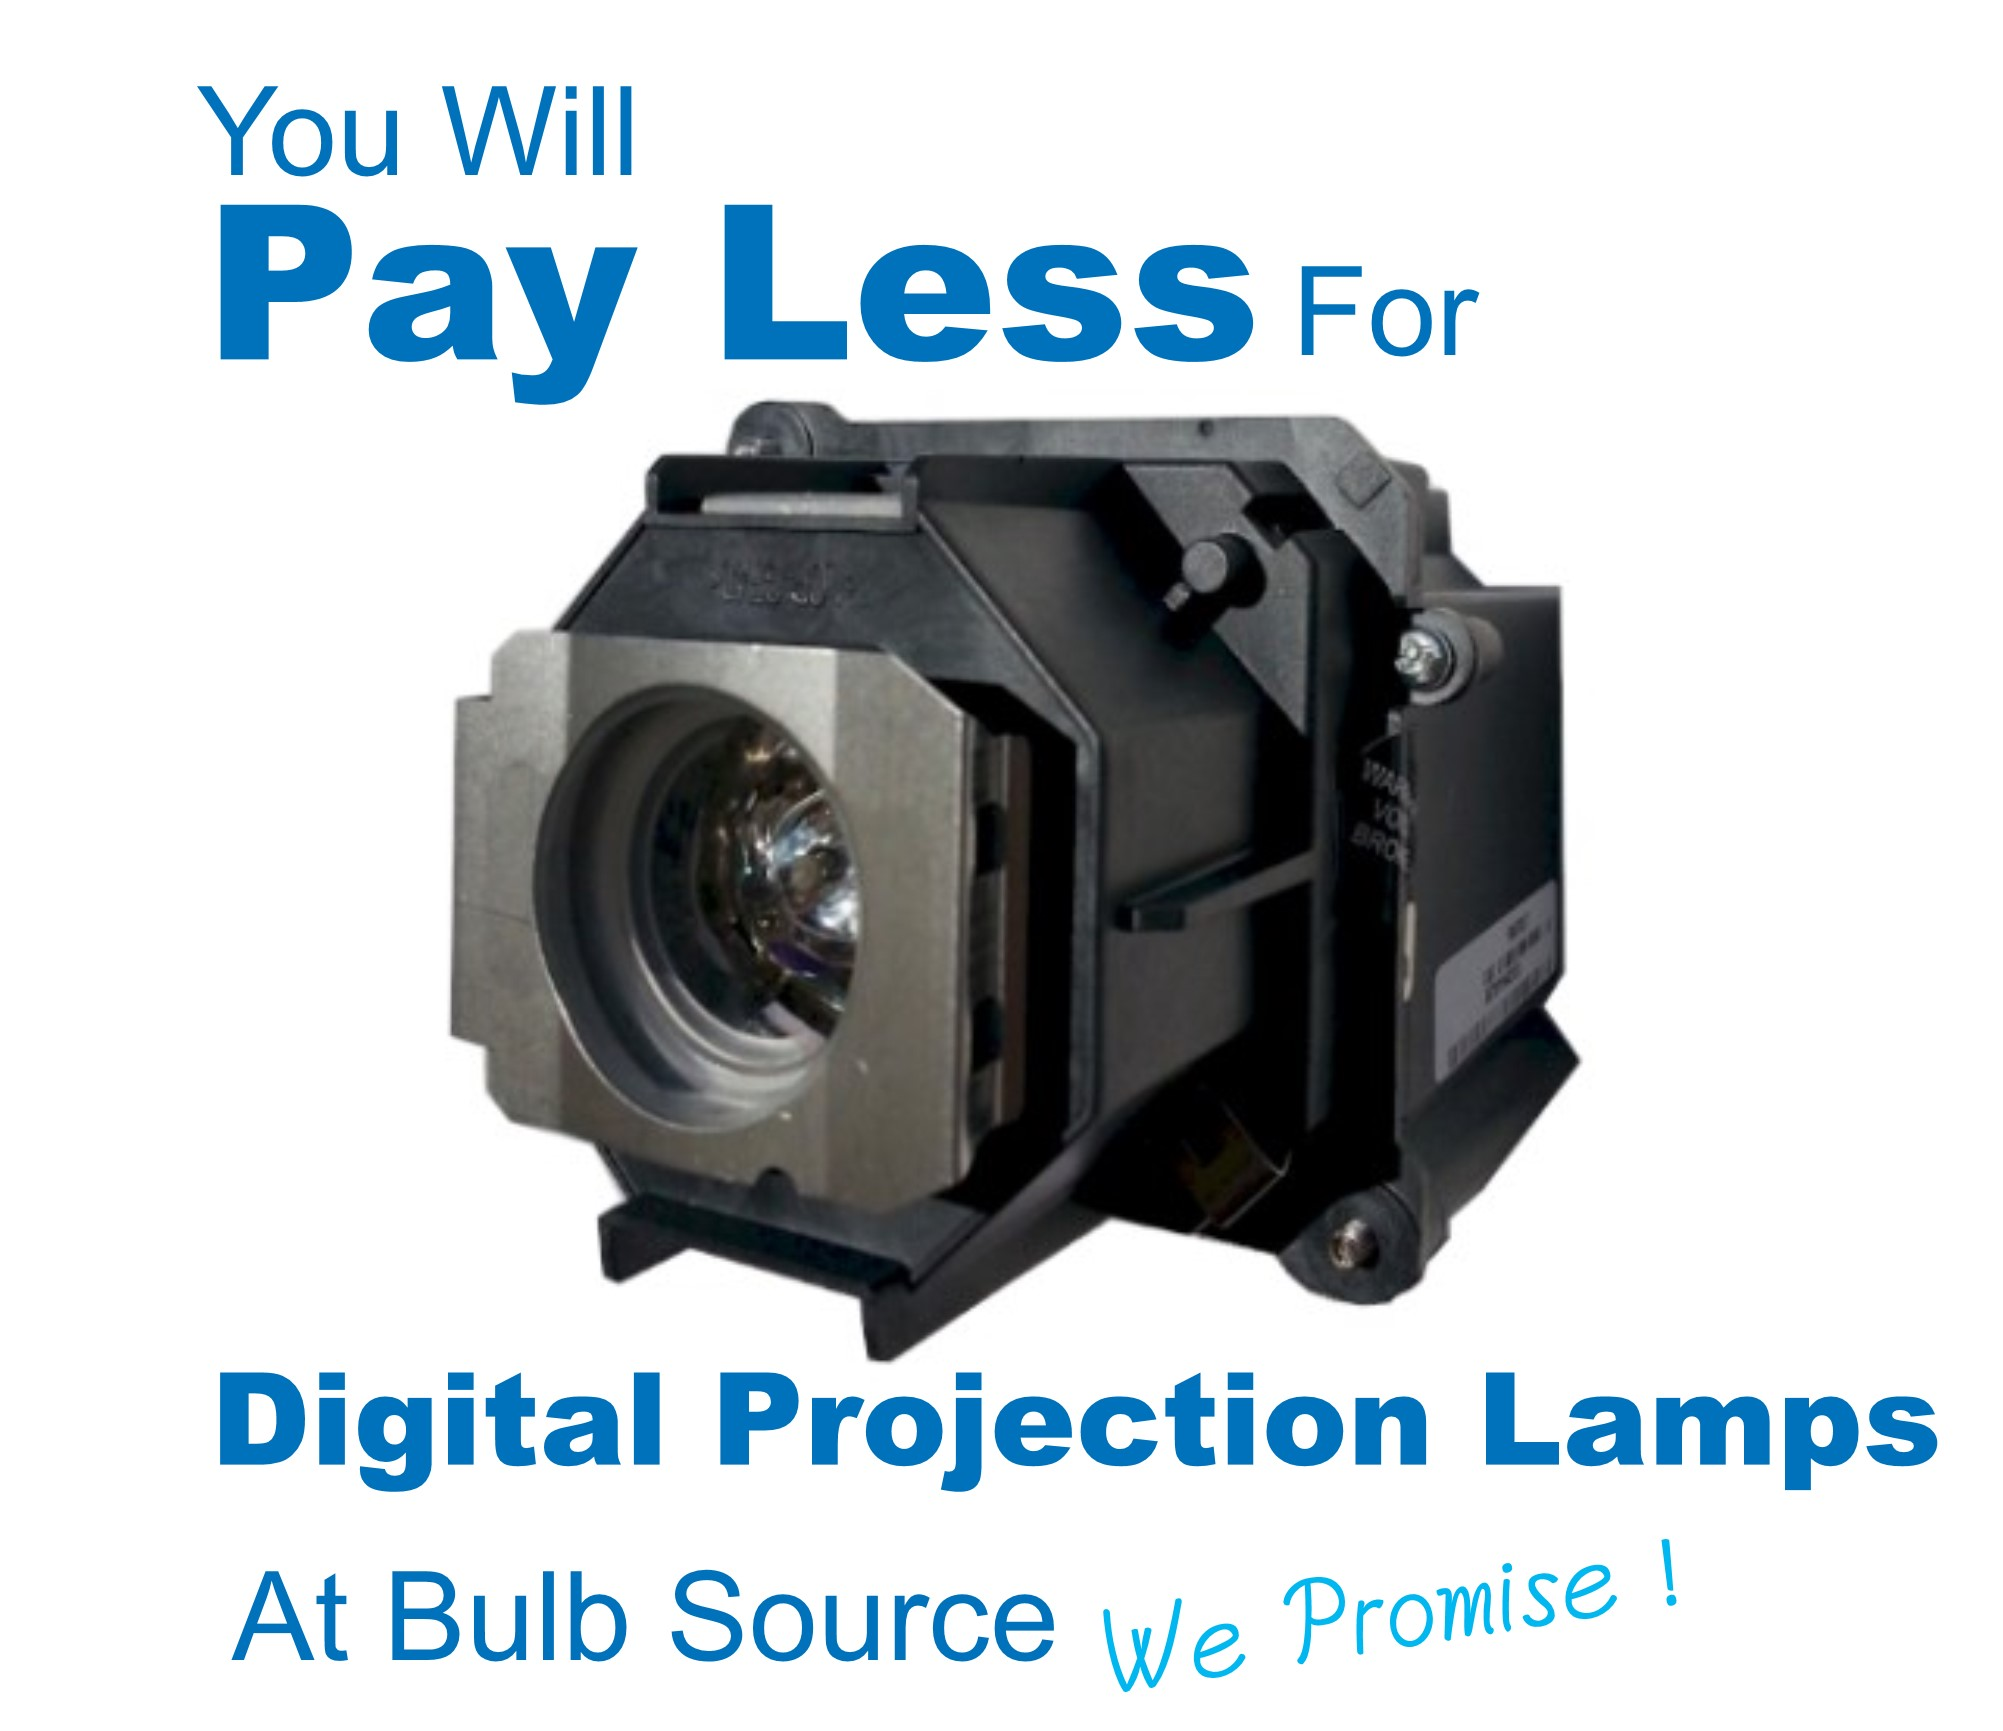 Digital Projection Lamps